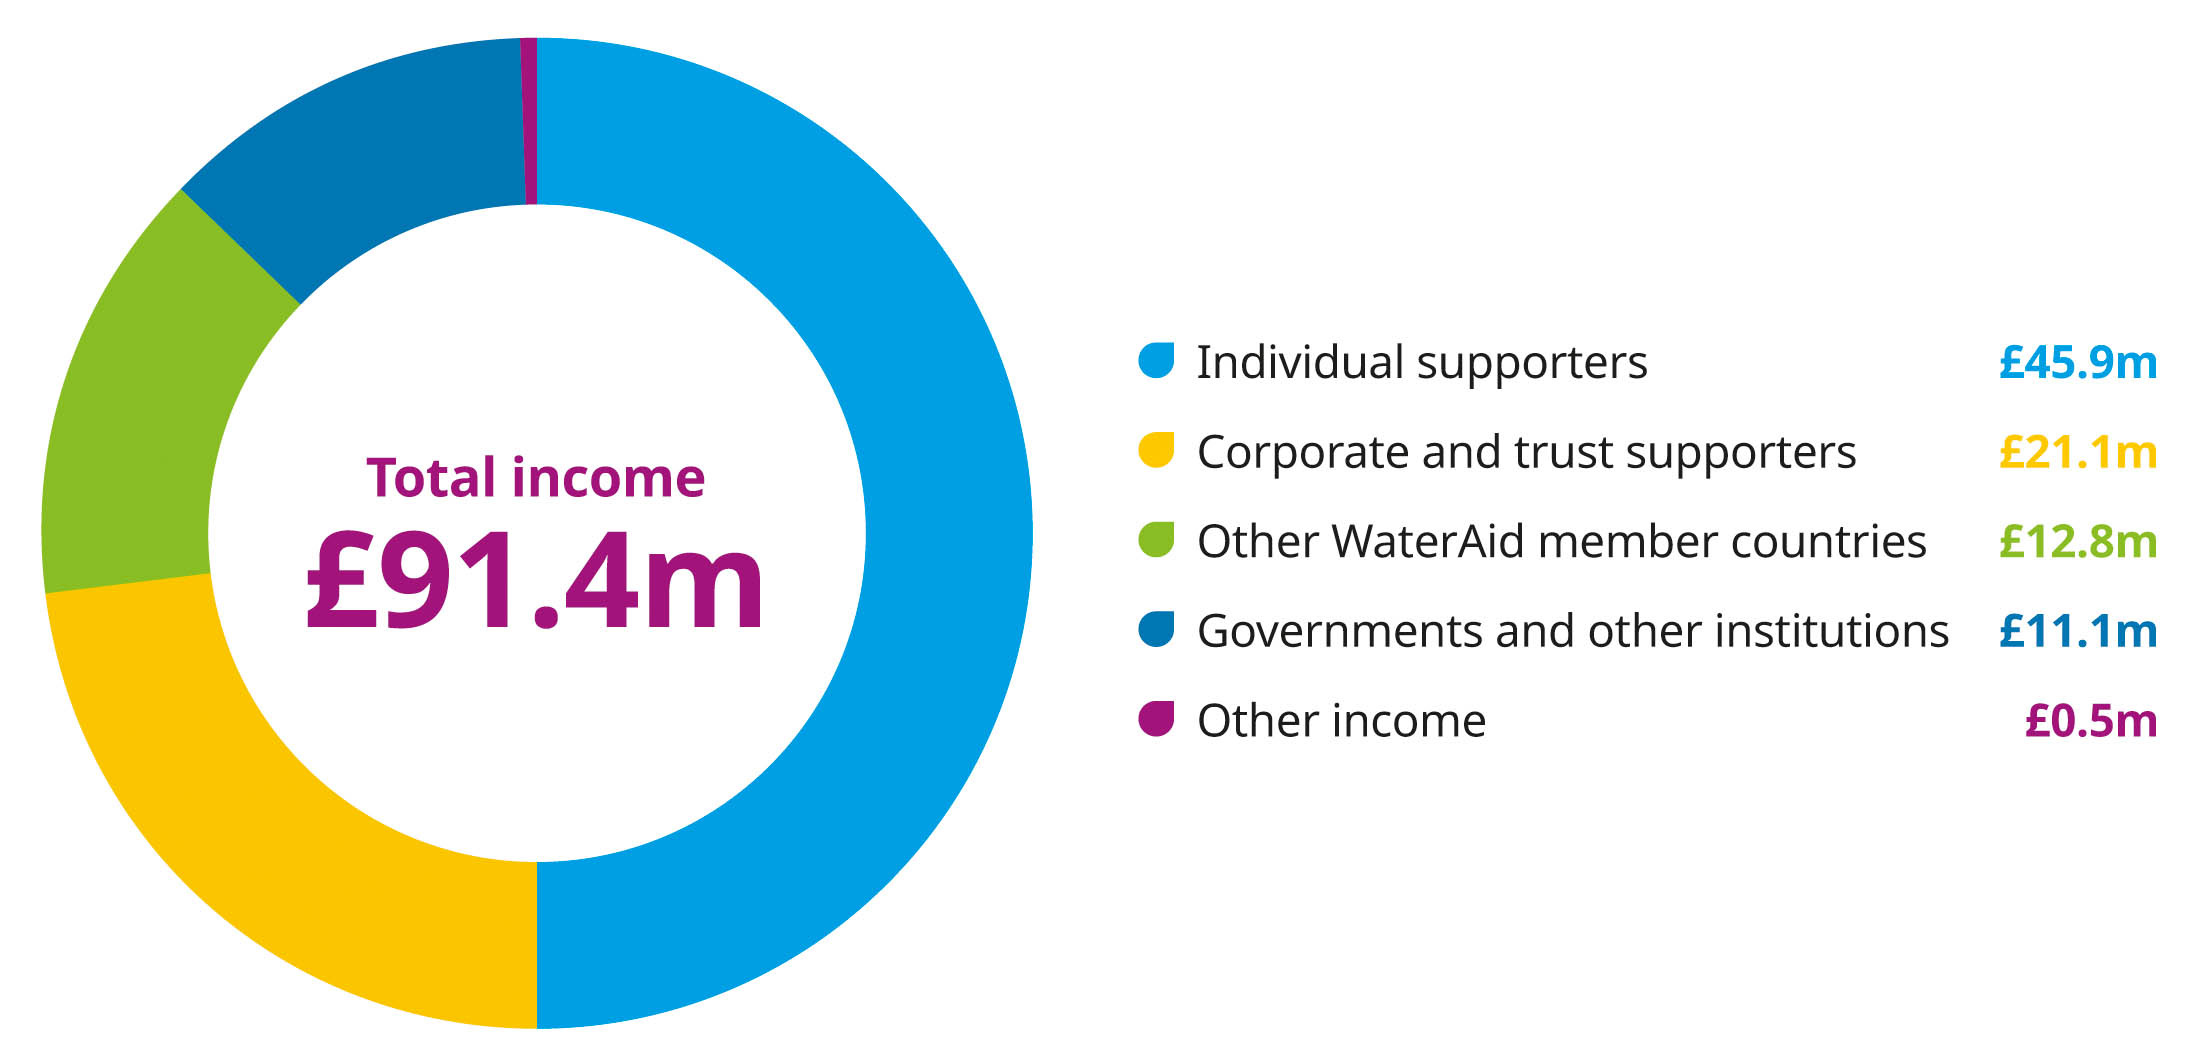 Graphic showing: Our total income last year was £91.4 million.   Of this:   £45.9m came from individual supporters £21.1m came from corporate and trust supporters  £12.8m came from other WaterAid member countries  £11.1m came from governments and other institutions  £0.5m came from other sources